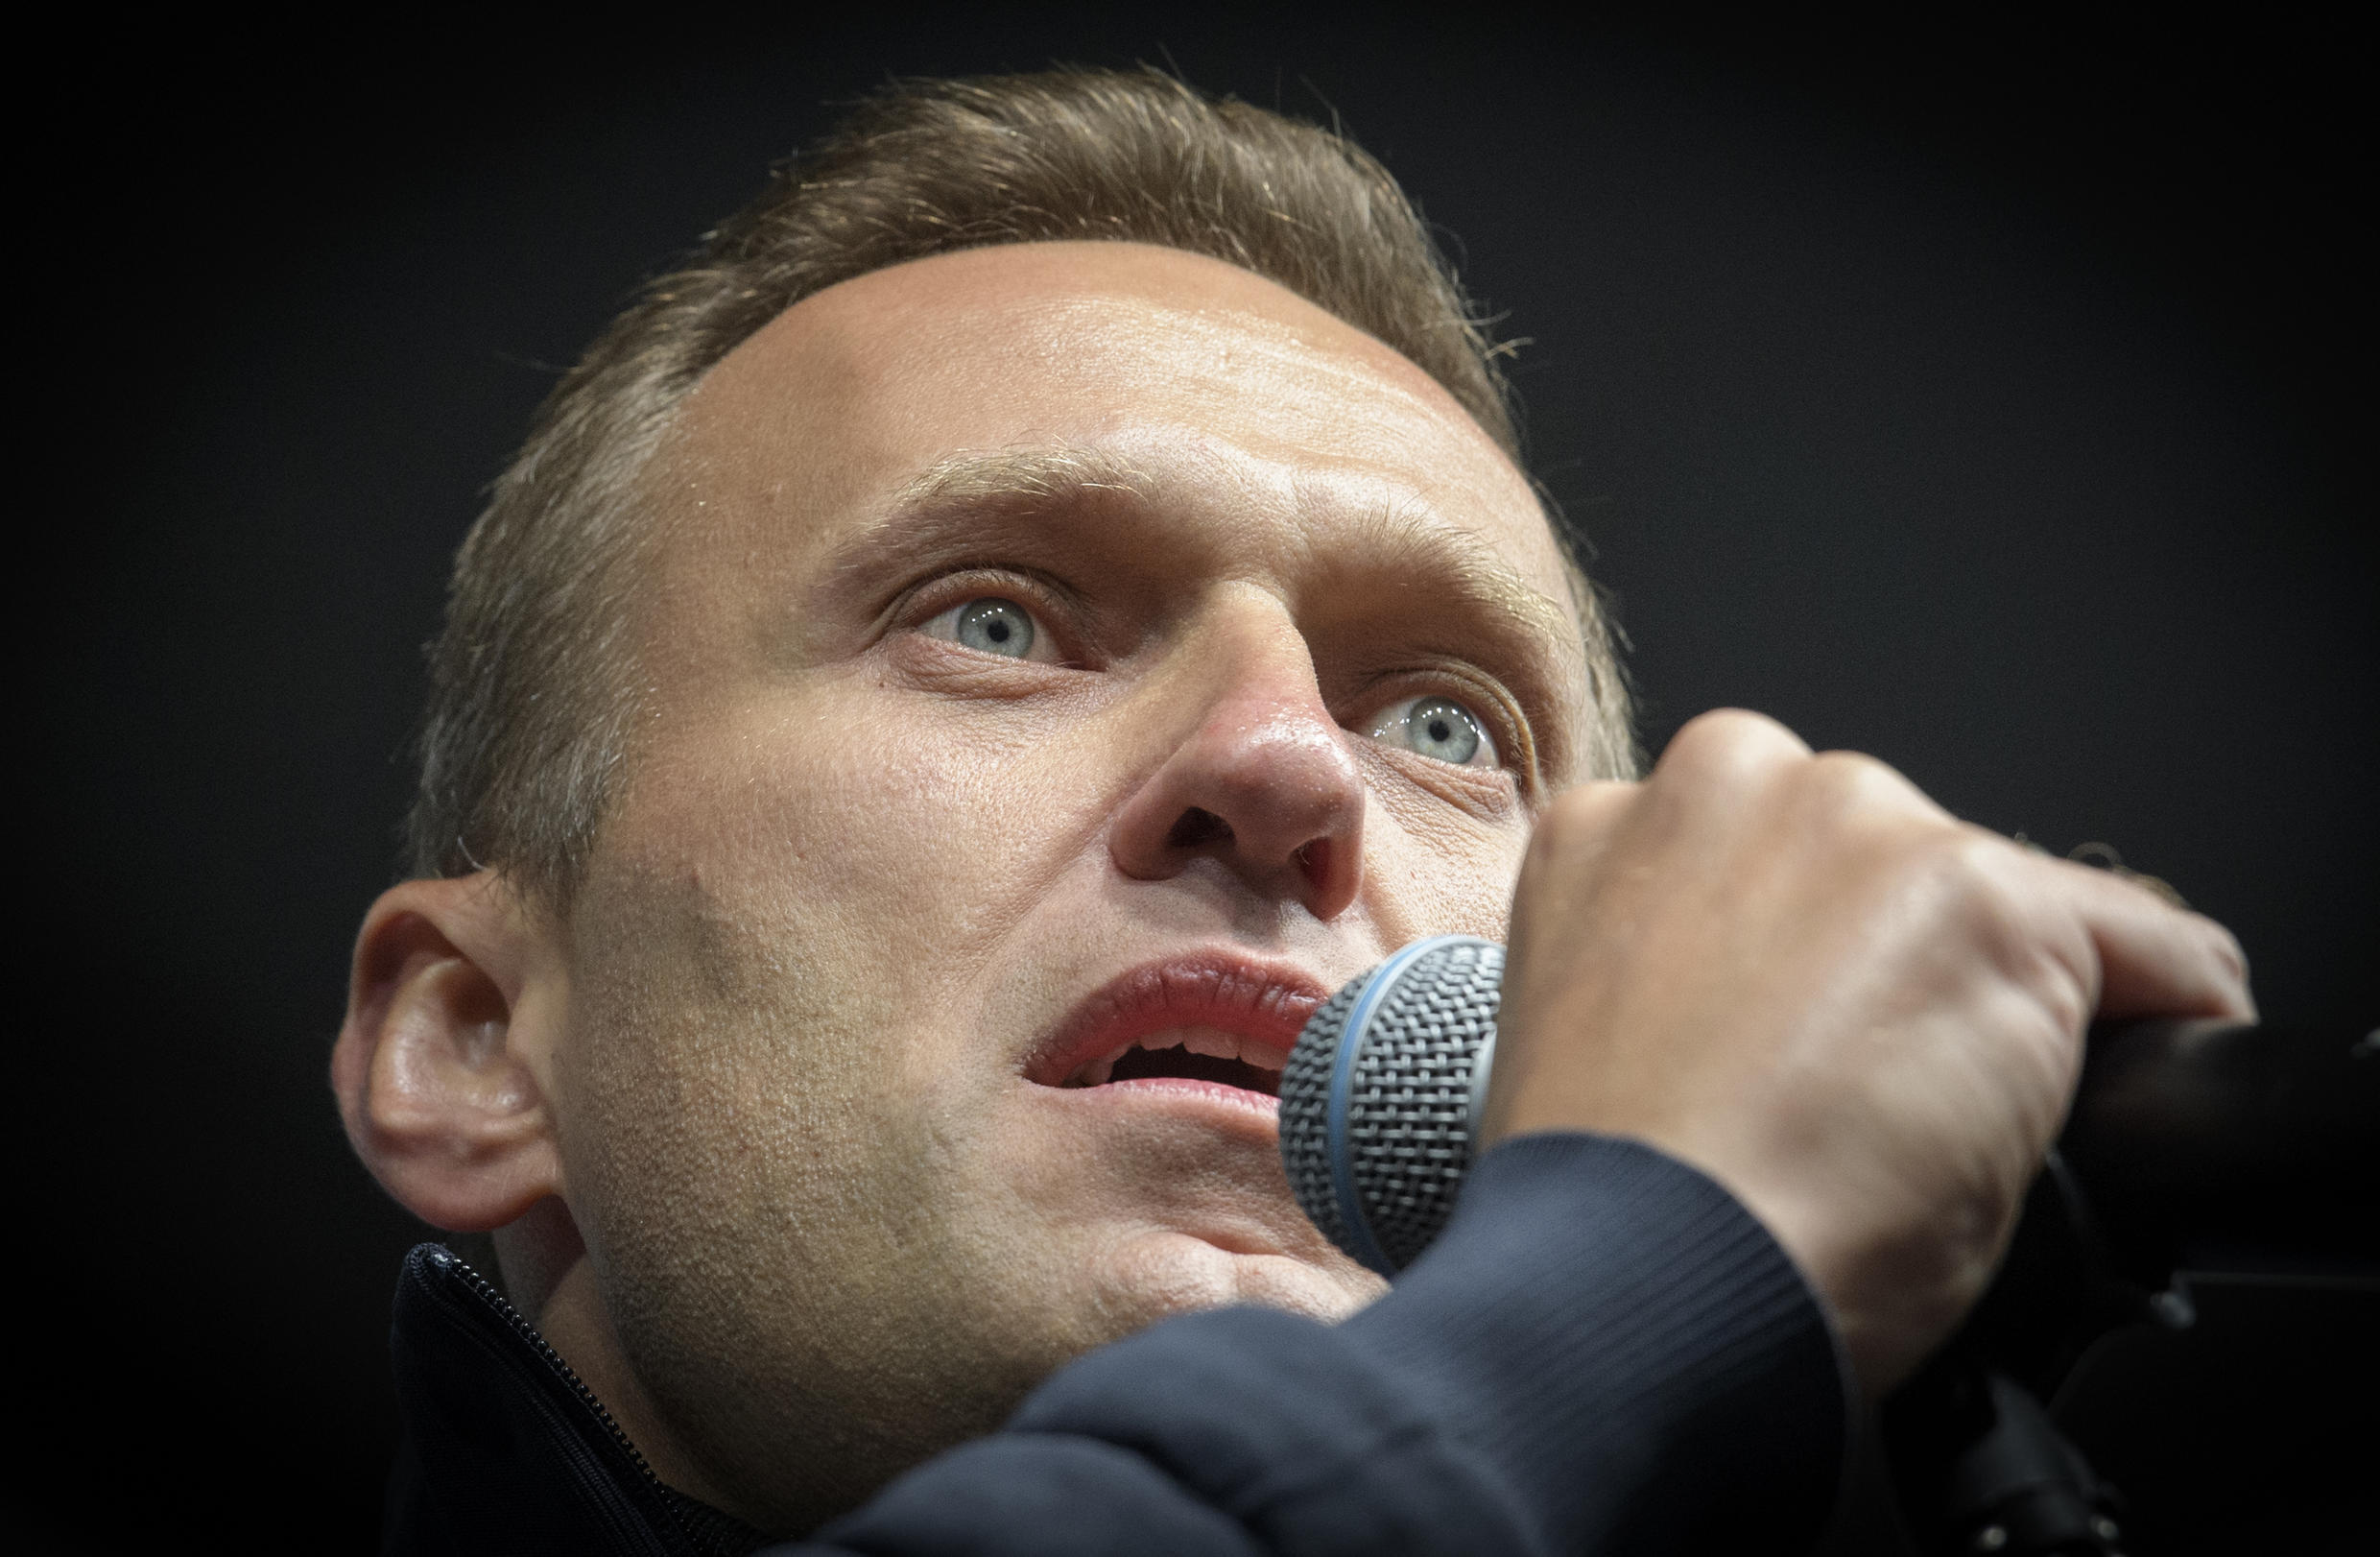 German doctors say their tests show Navalny was poisoned